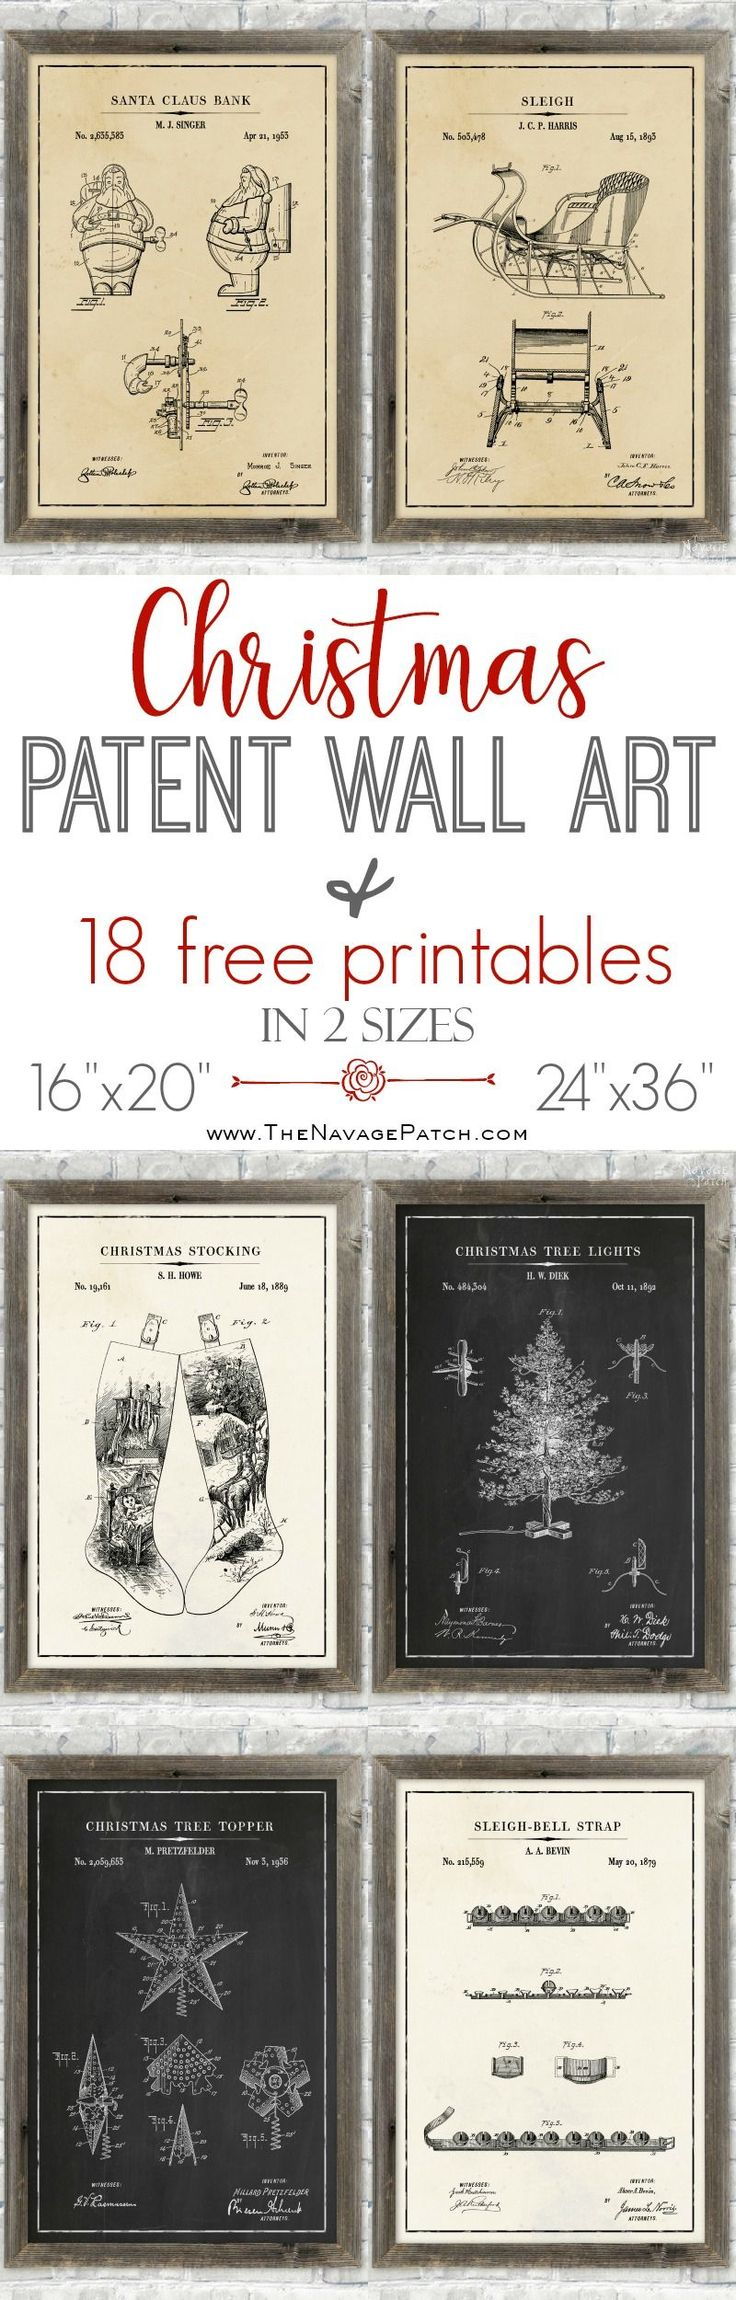 2216 best FREE PRINTABLES images on Pinterest | Frames ideas, Free ...